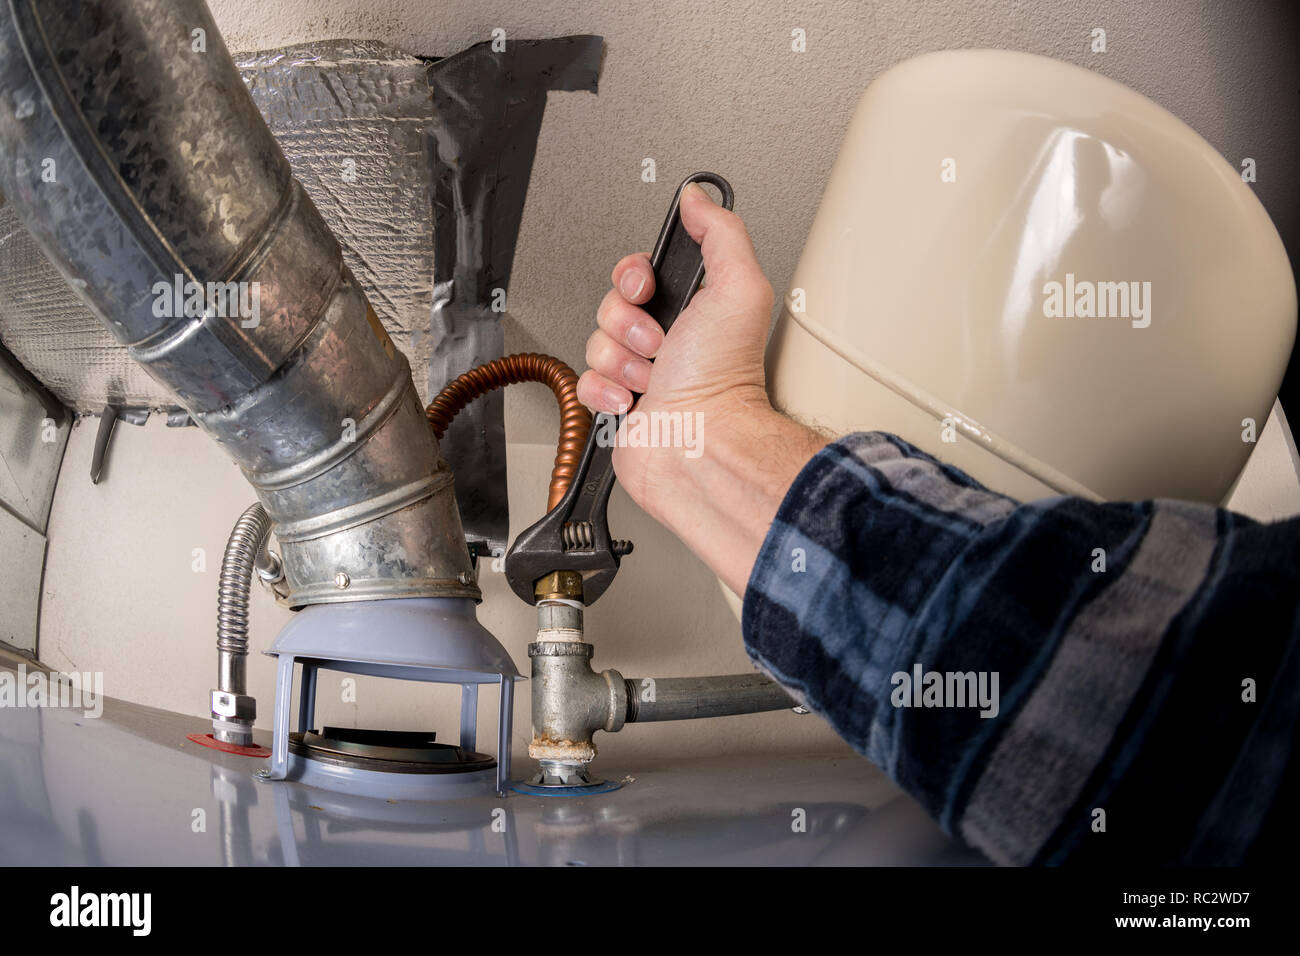 Adjustable wrench tightening a pipe on a water heater by a plumber - Stock Image